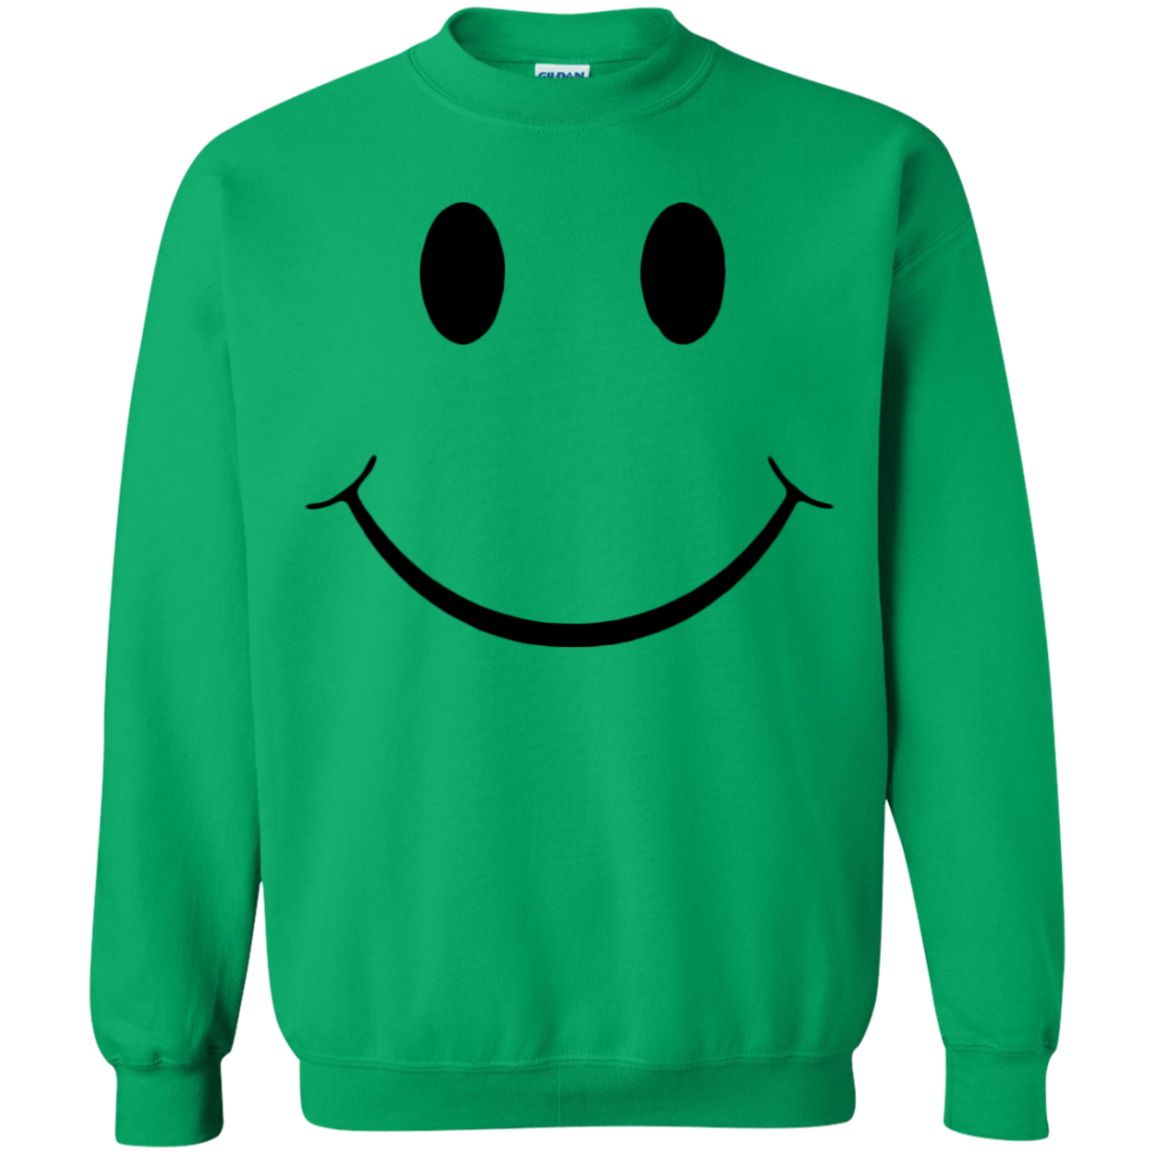 Green Sweatshirt Guy WWE